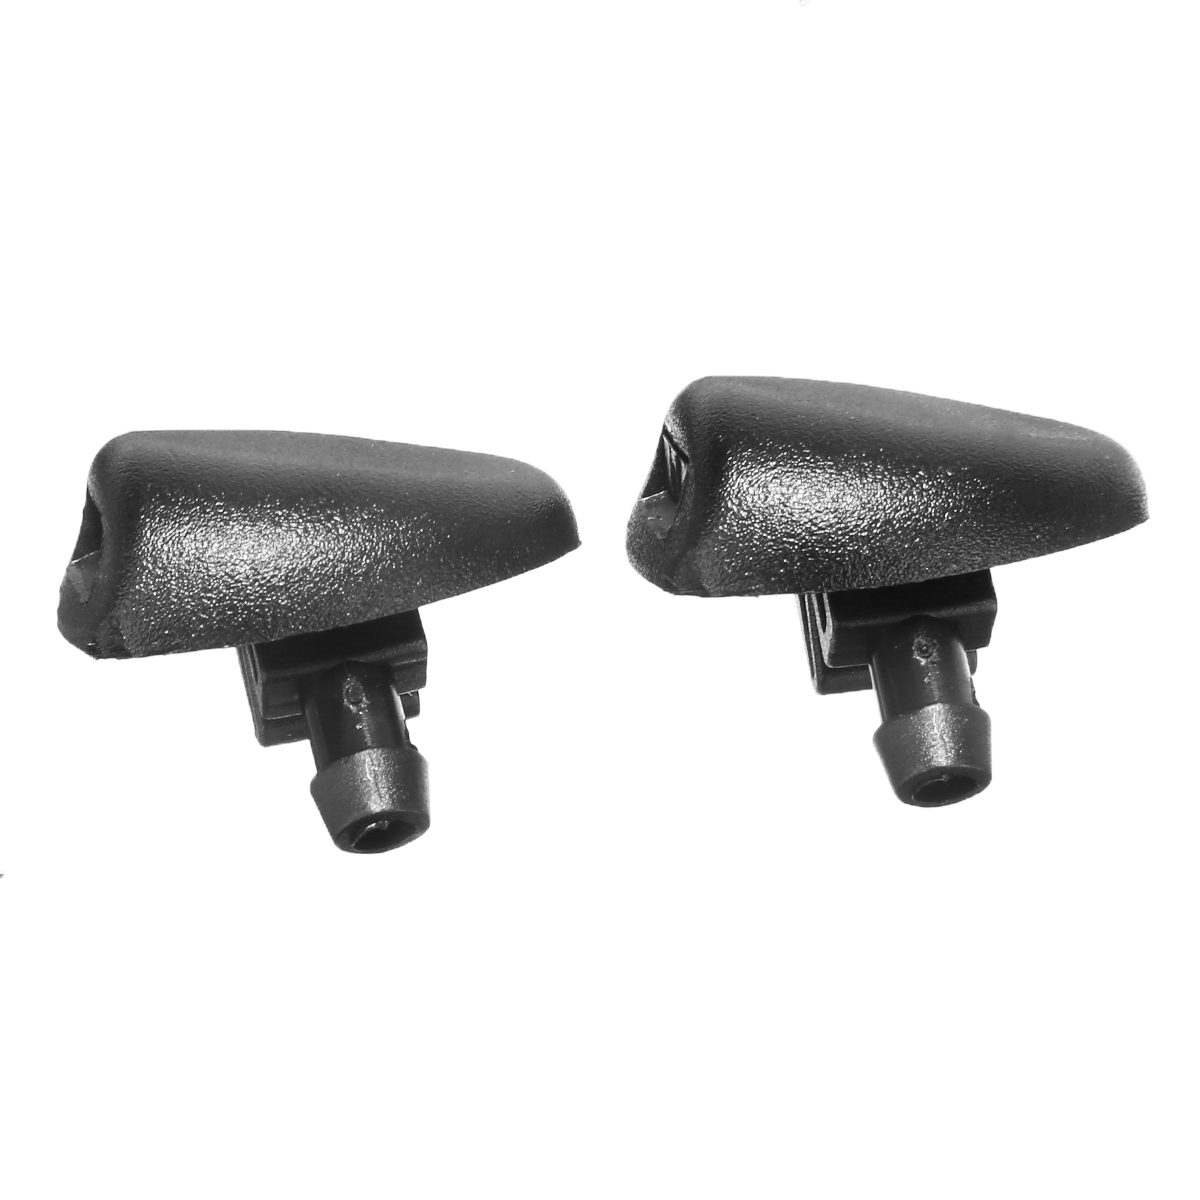 2pcs ABS Plastic Windshield Wiper Washer Spray Nozzle Washer Jet Nozzle Replacement For Peugeot 407 206